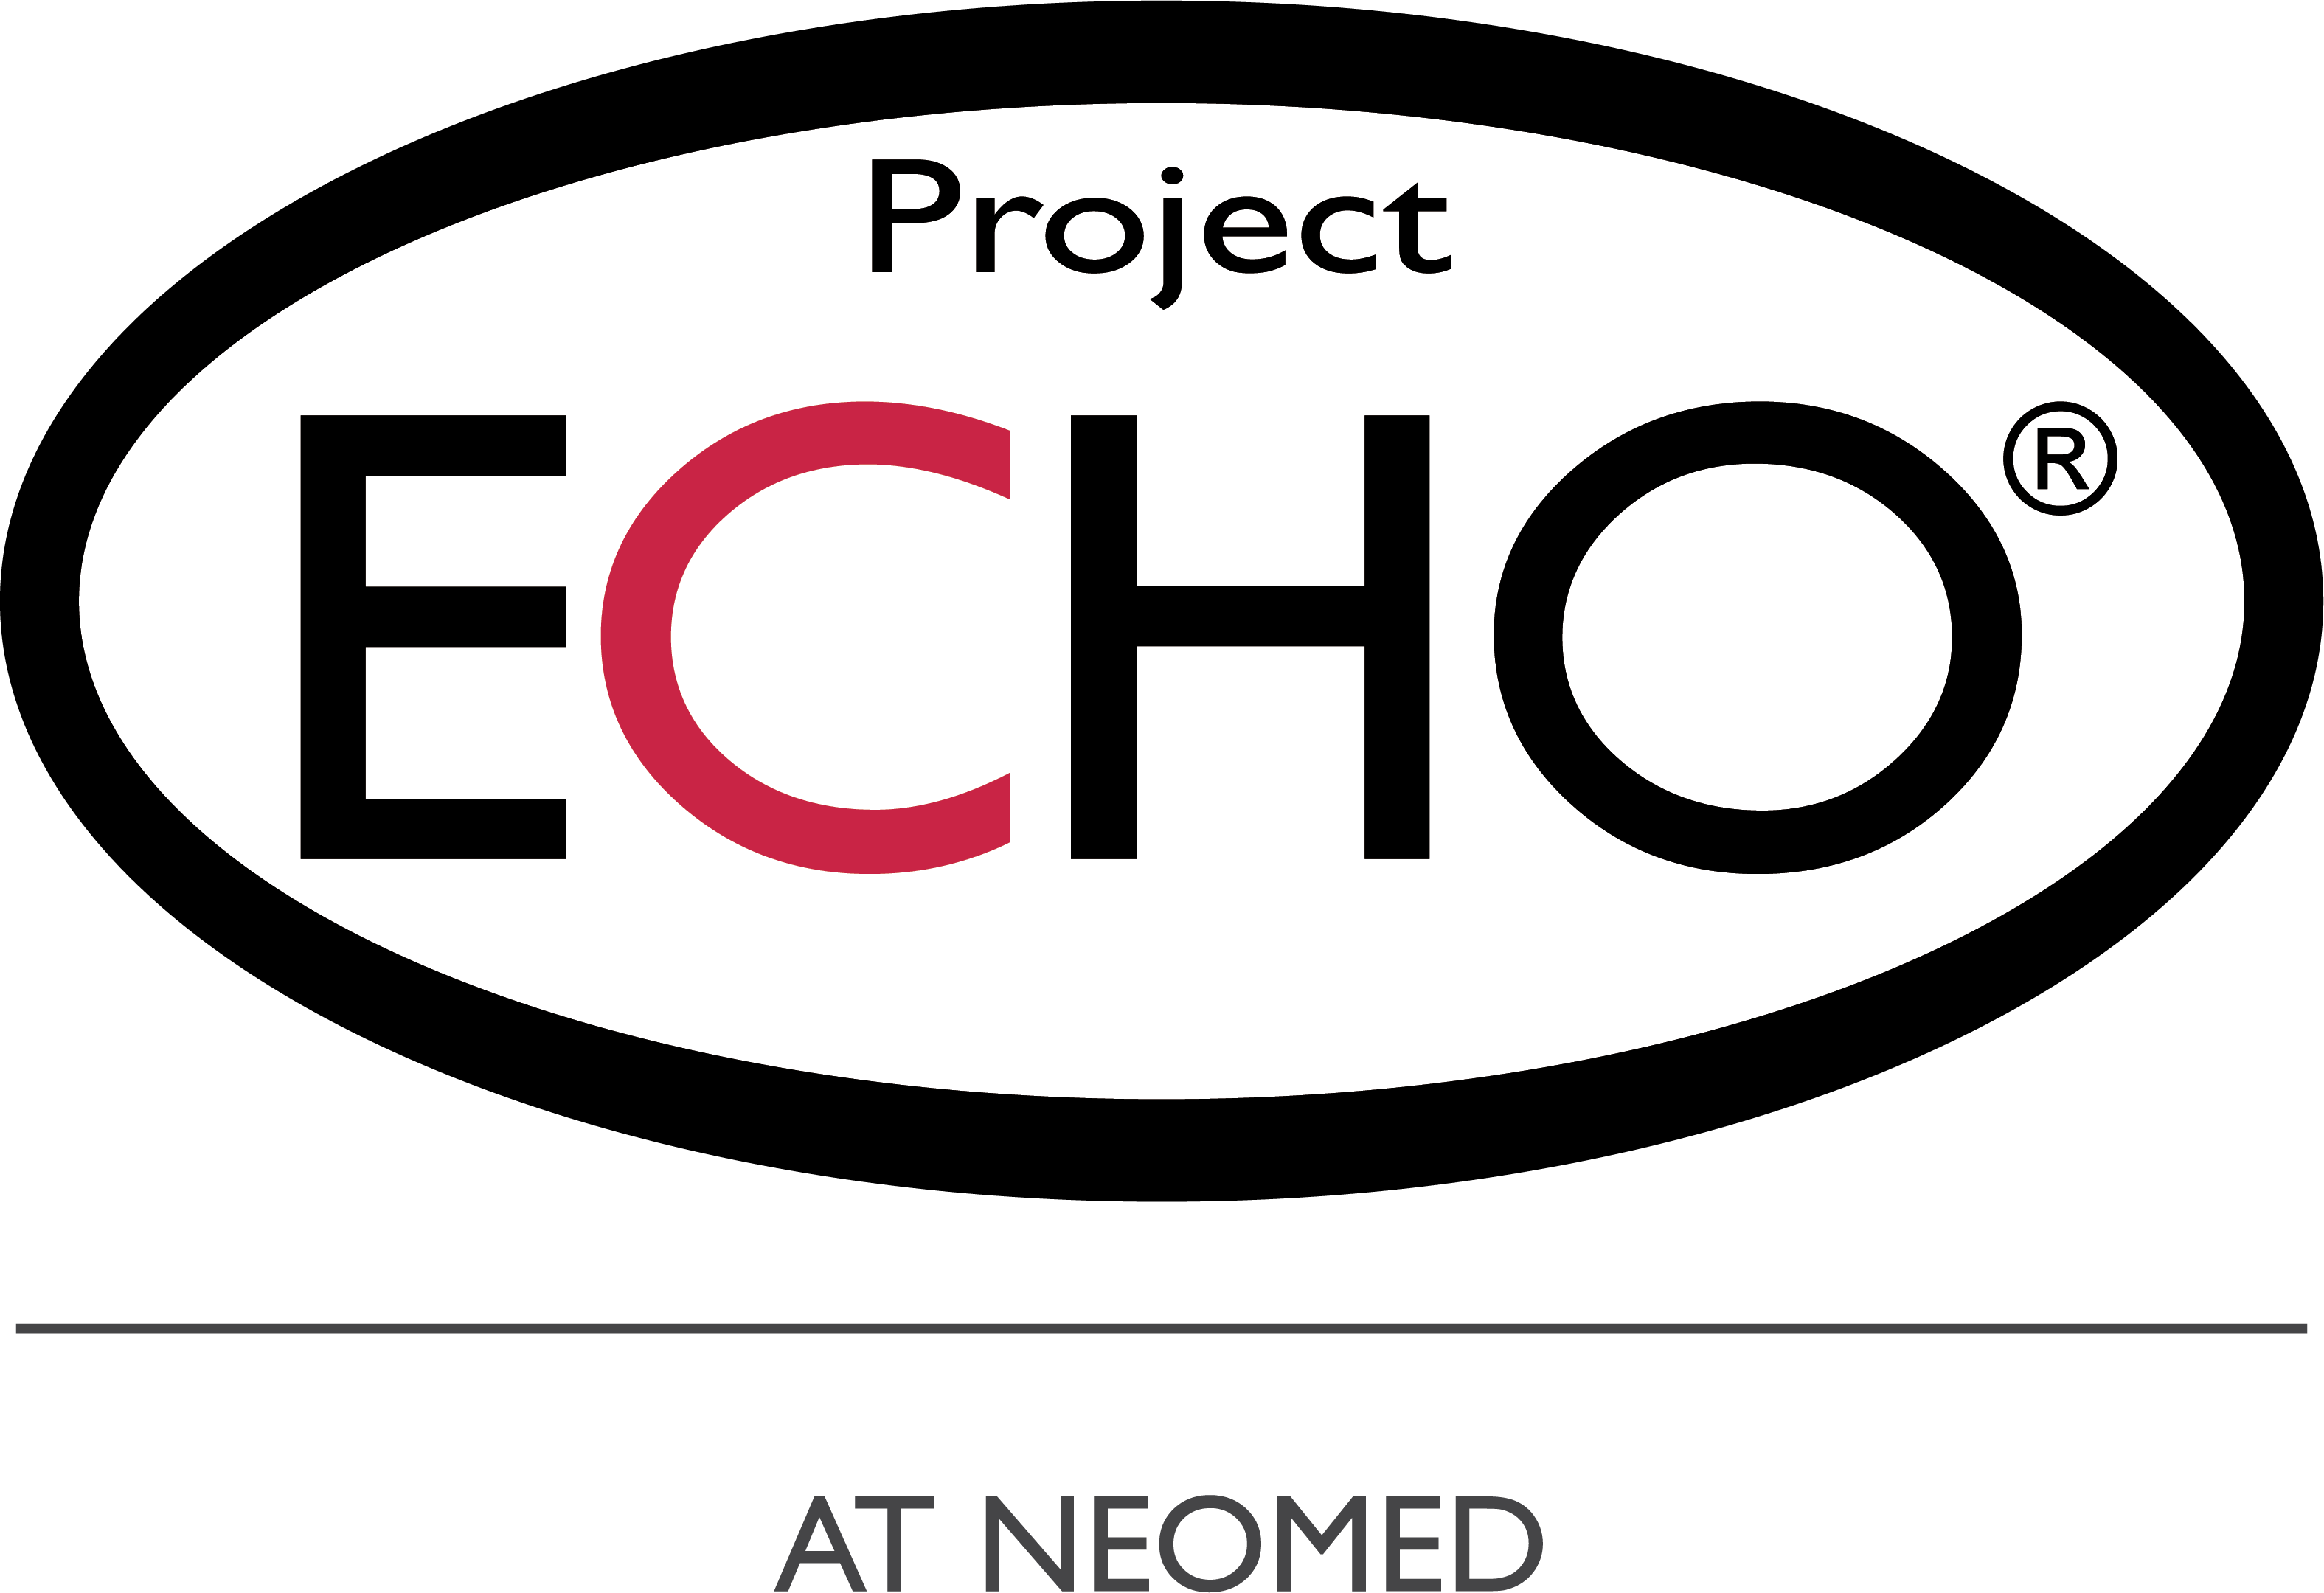 Thumbnail of NEOMED Project ECHO logo